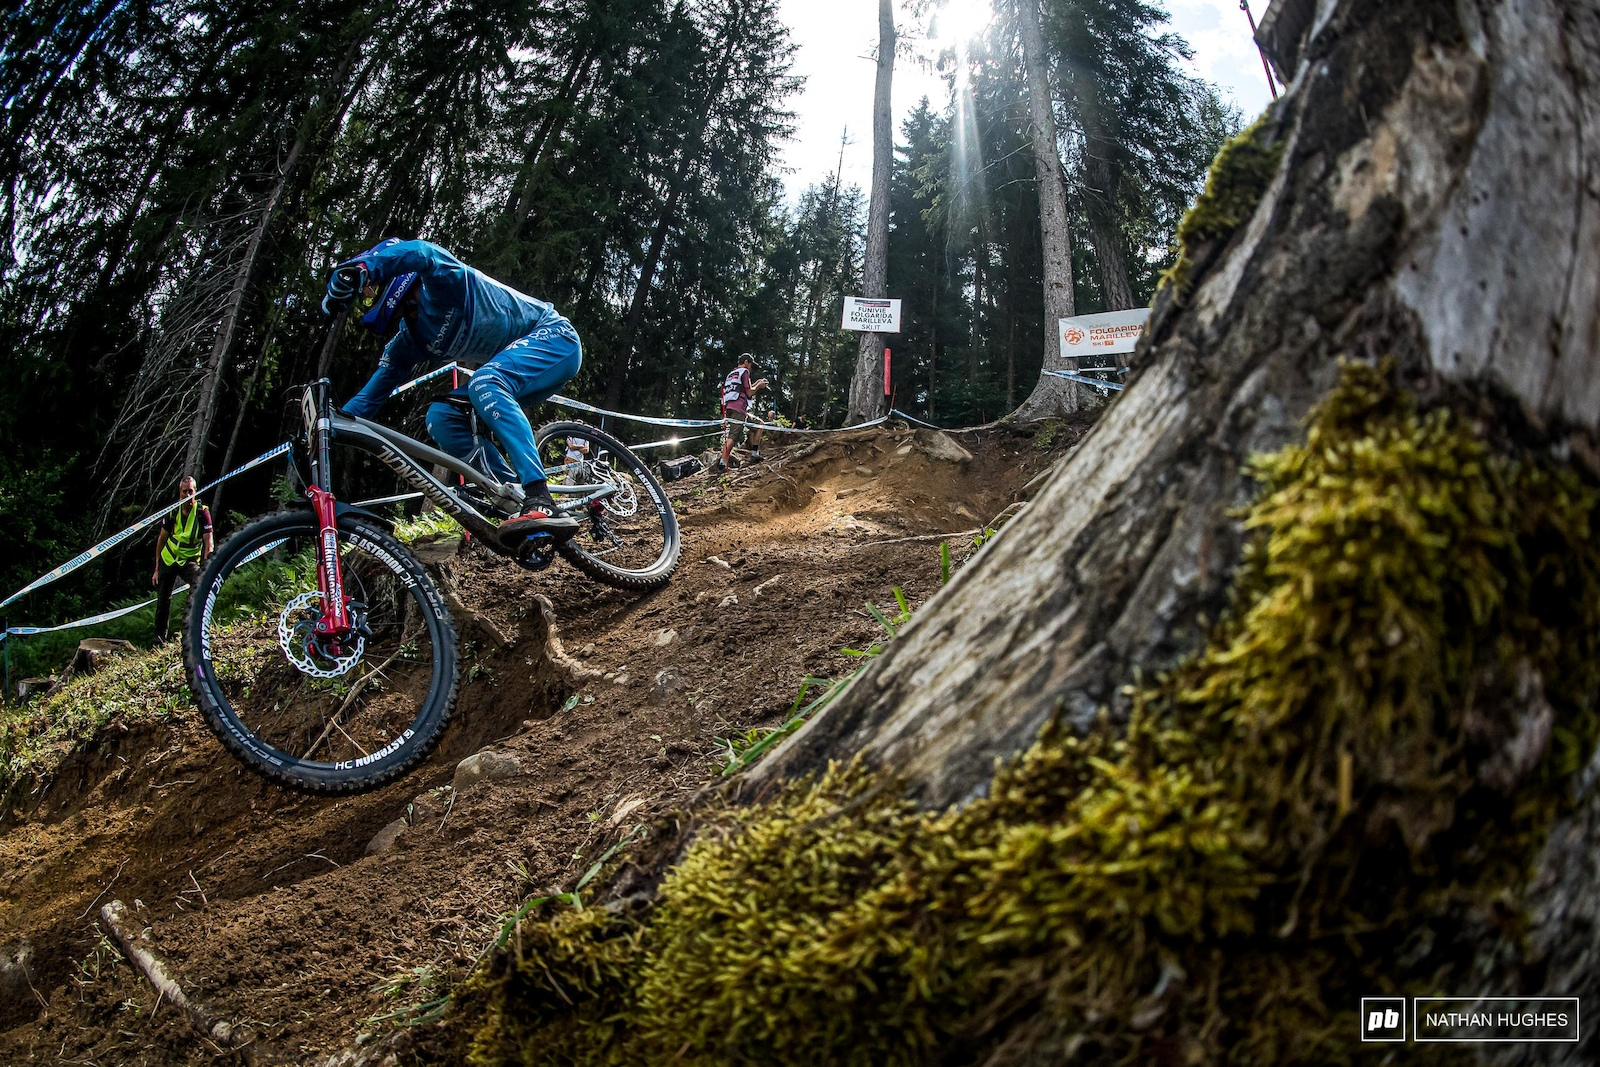 Amaury was not the only Pierron killing it out there on the hill today - Baptiste snuck into the top 10 too.